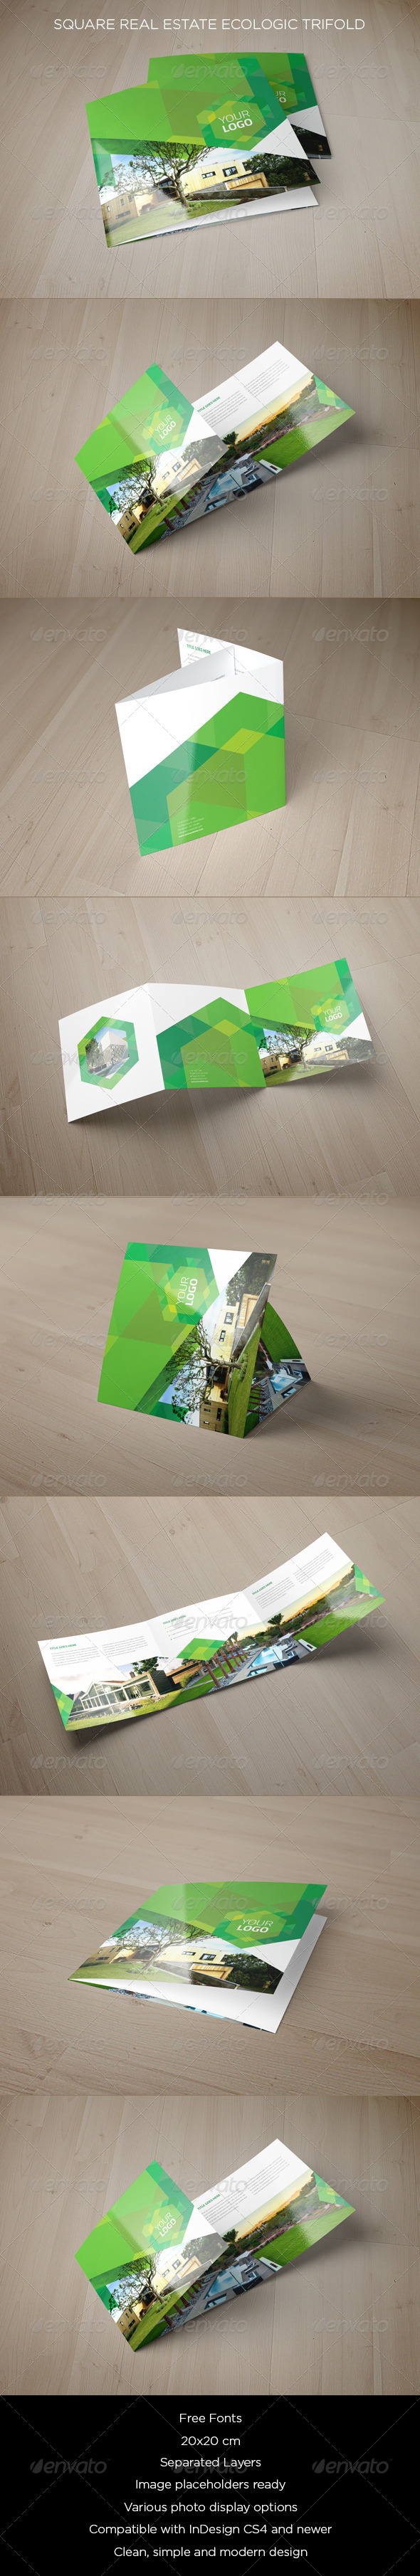 GraphicRiver Square Real Estate Ecologic Trifold 8563898